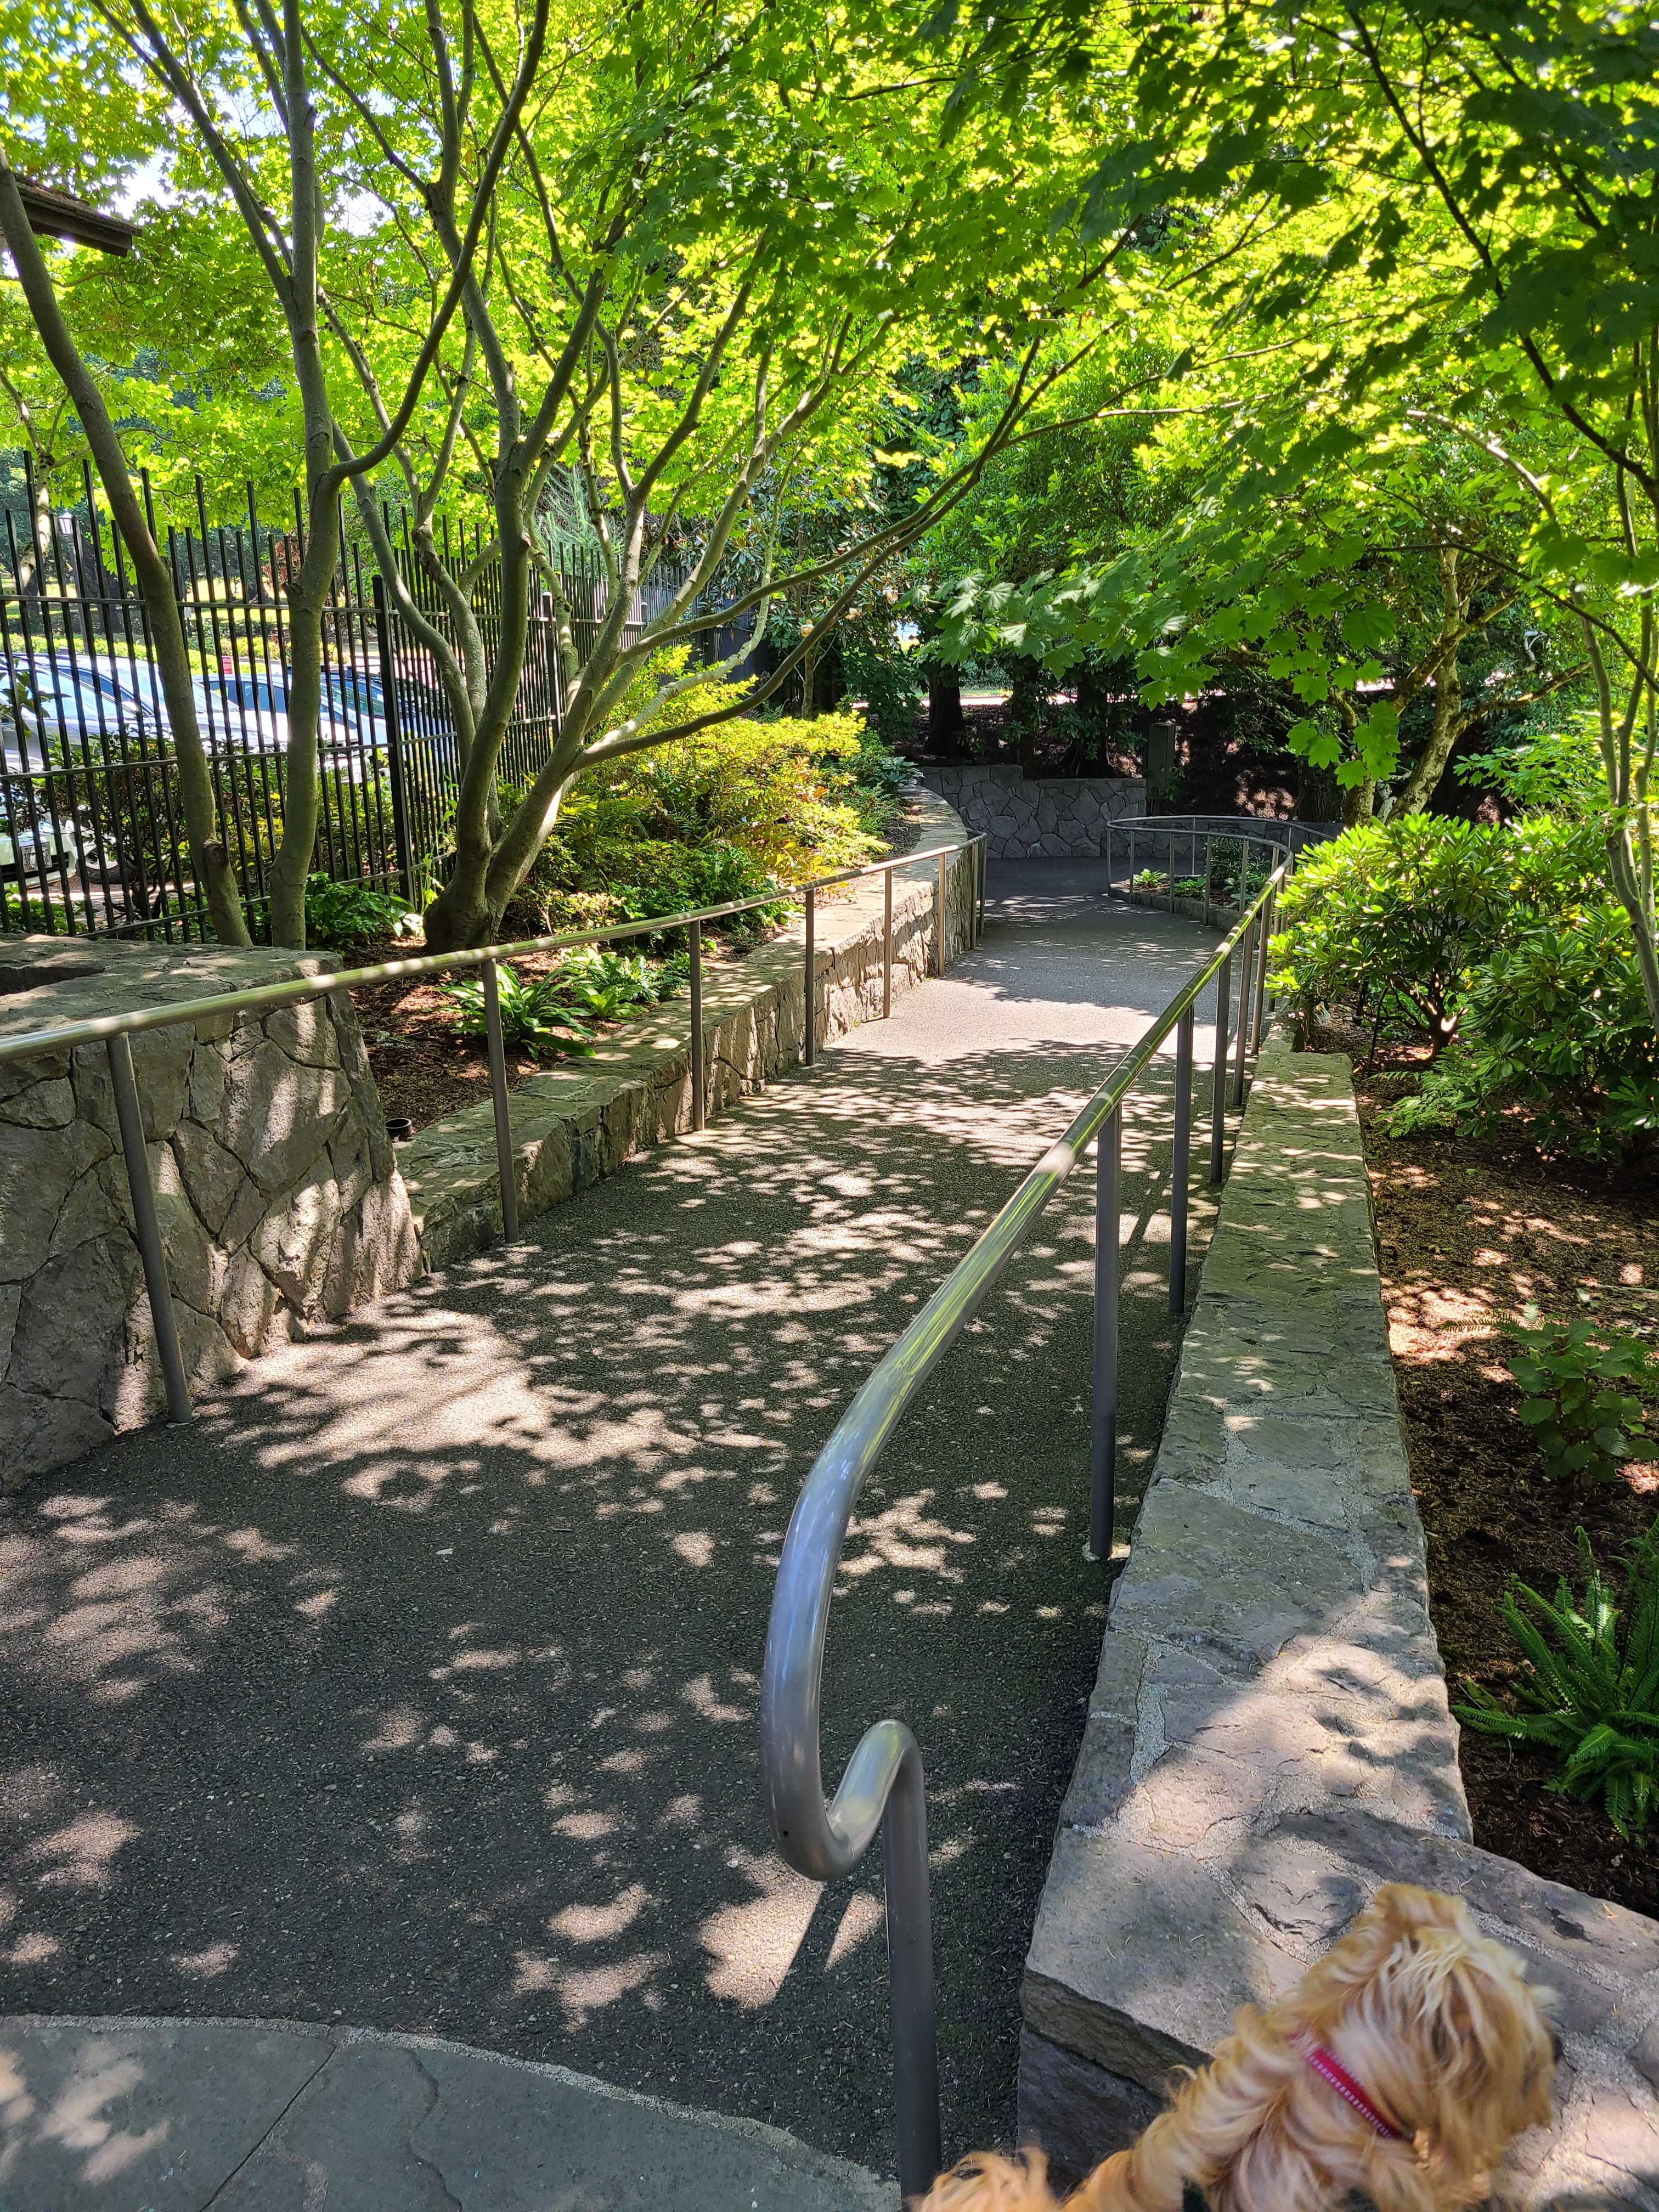 A portion of the ADA accessible ramp with handrails.